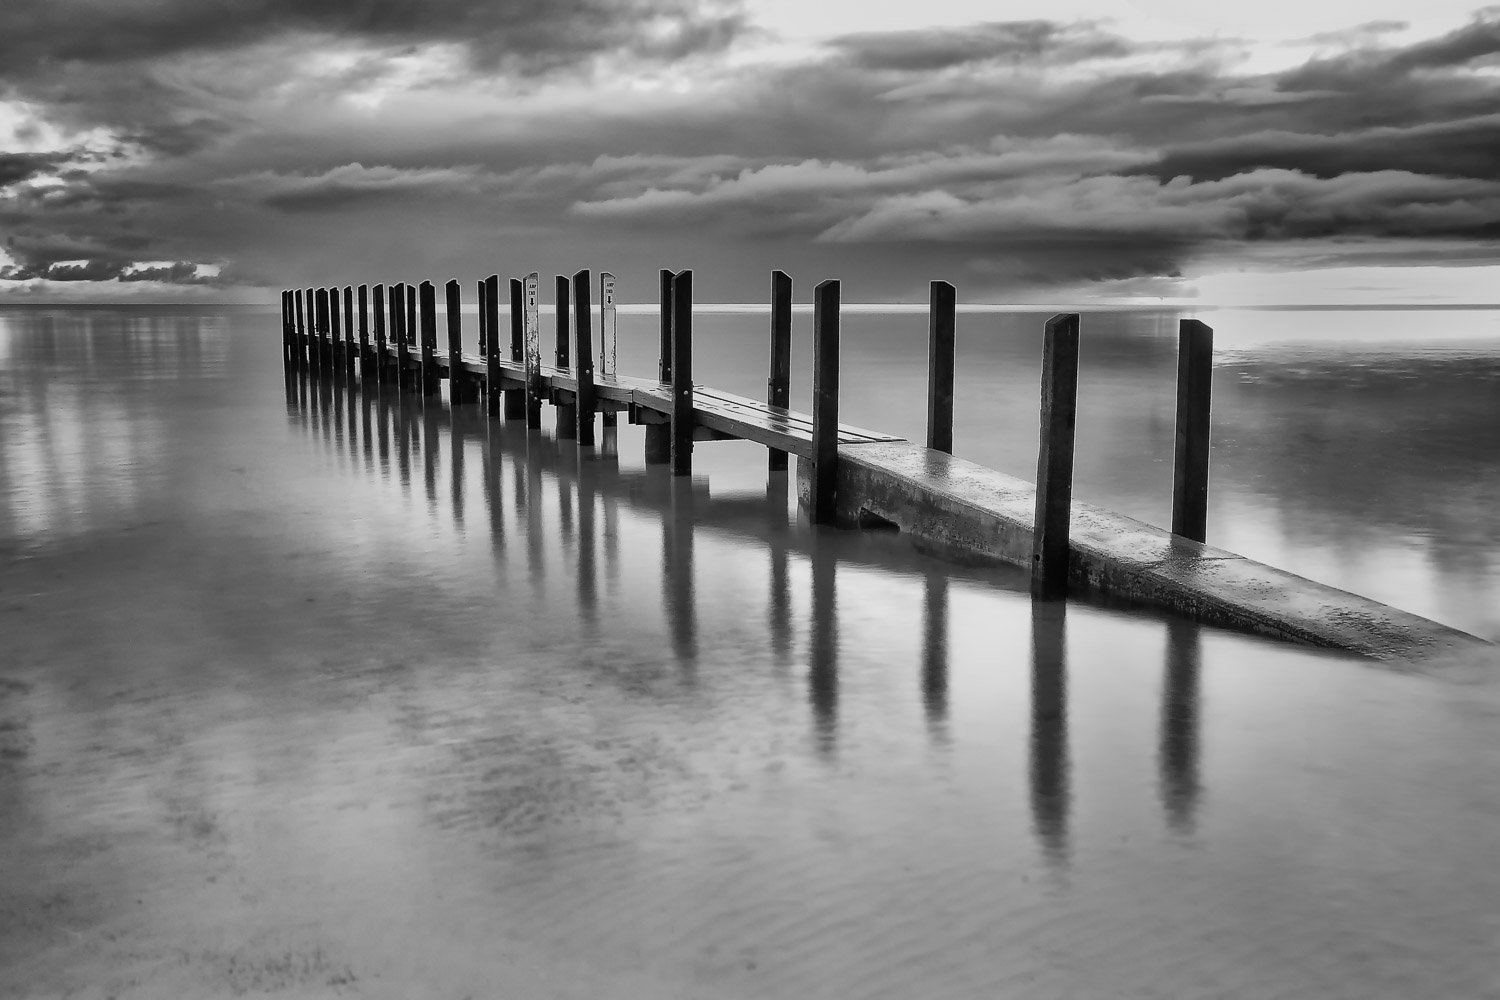 Morning-Storm_Boat-Ramp_Quindalup_Dunsborough_South-West_WA_Black and White